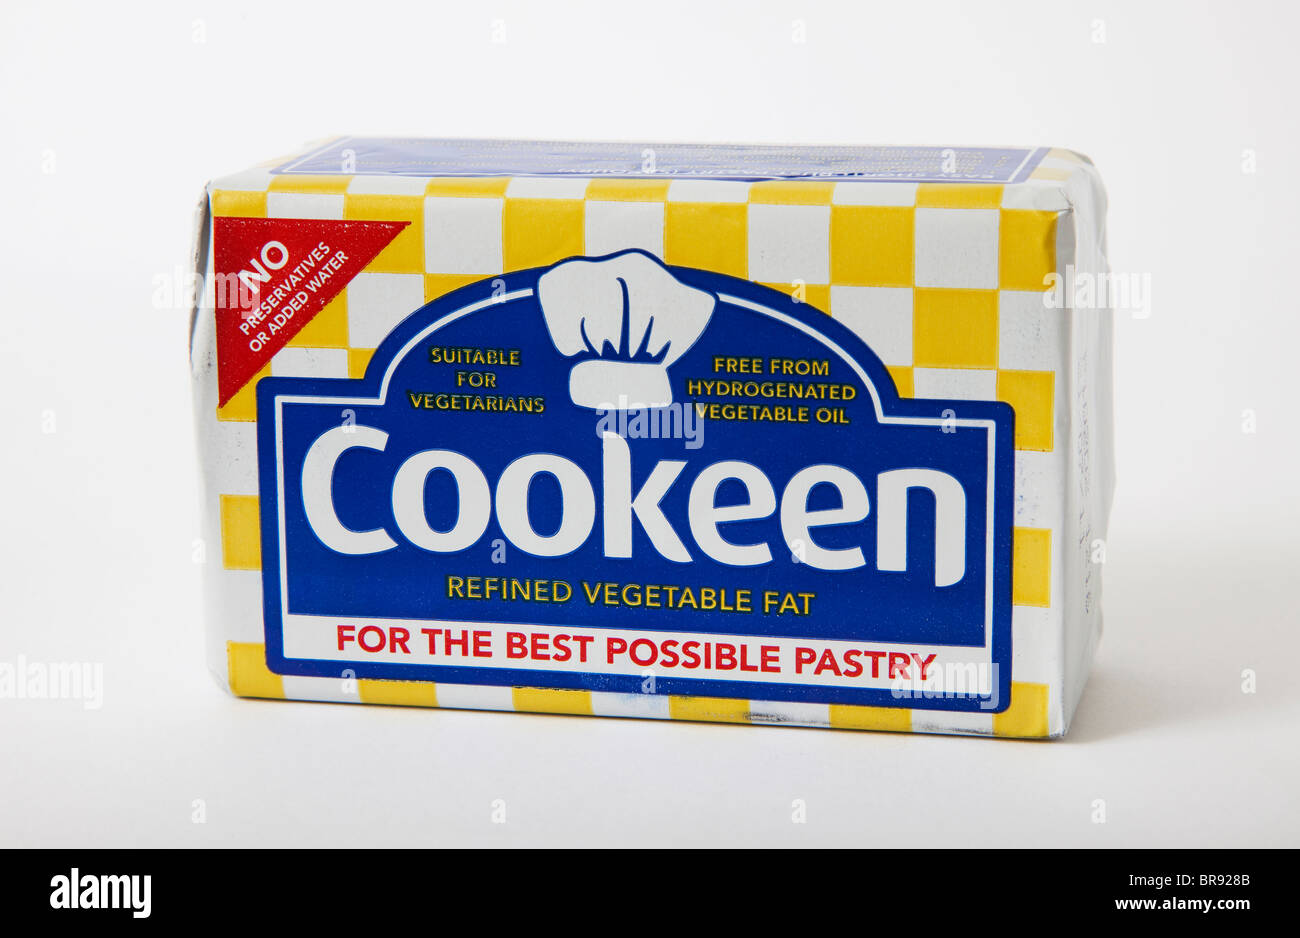 cookeen 'cooking fat' - Stock Image